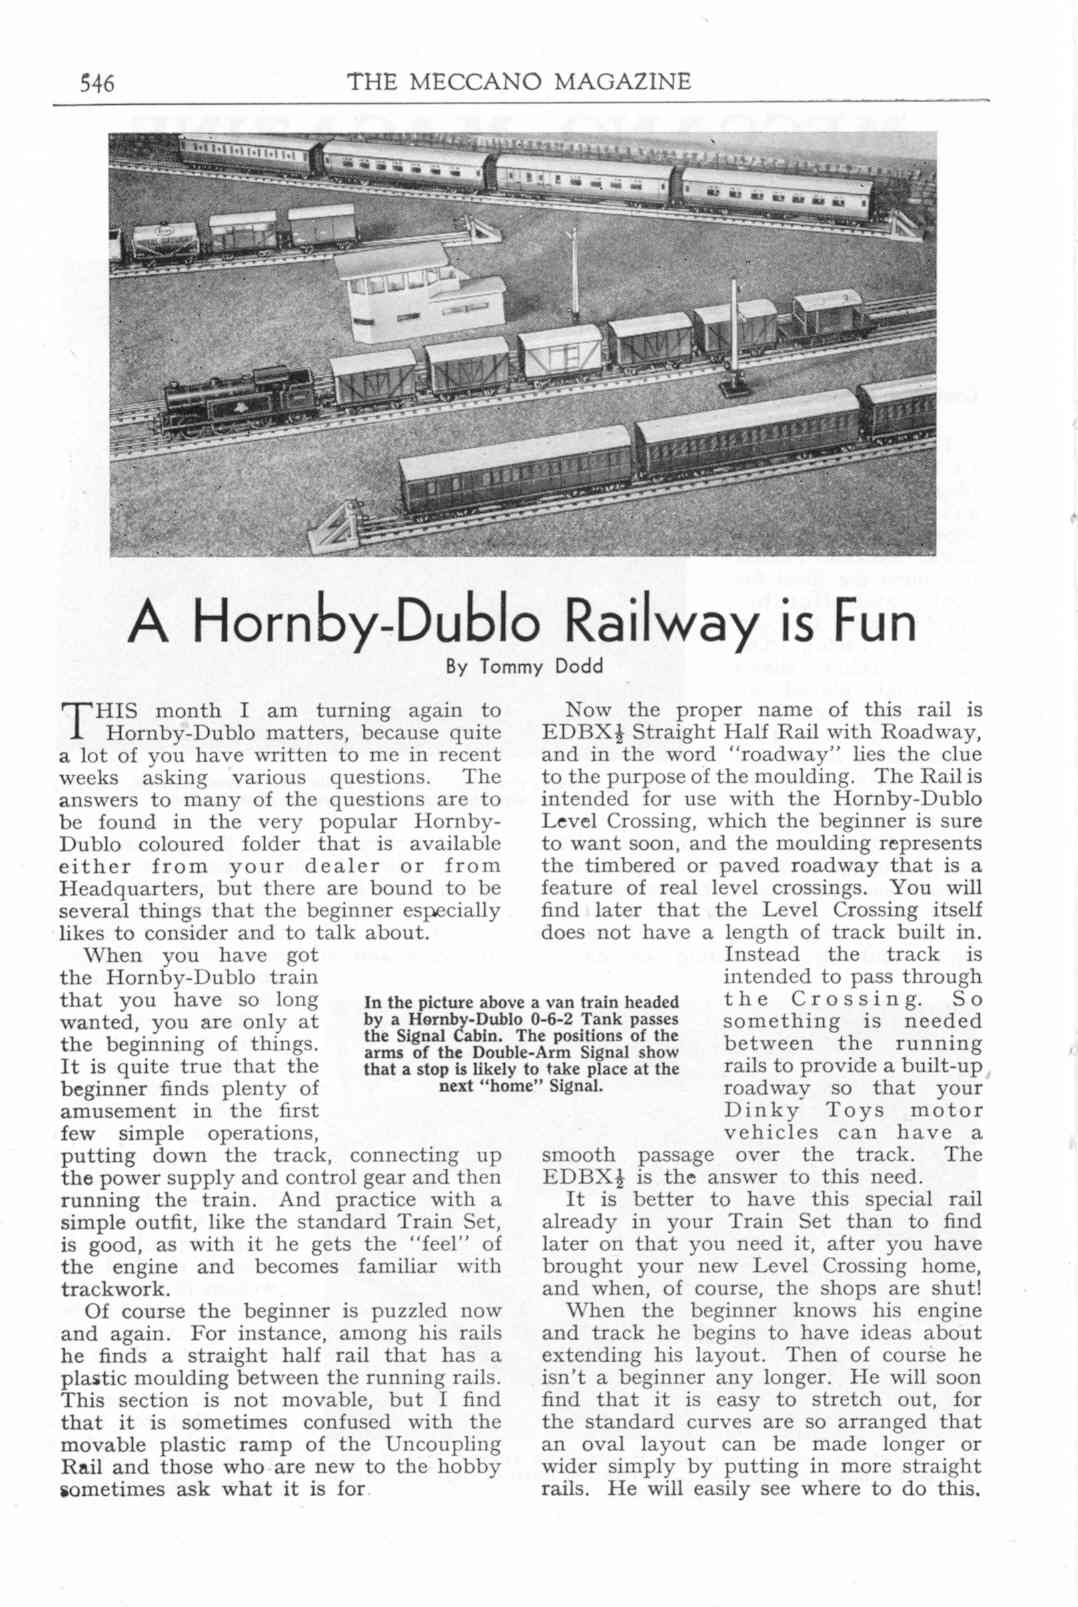 UK Meccano Magazine October 1955 Page 546